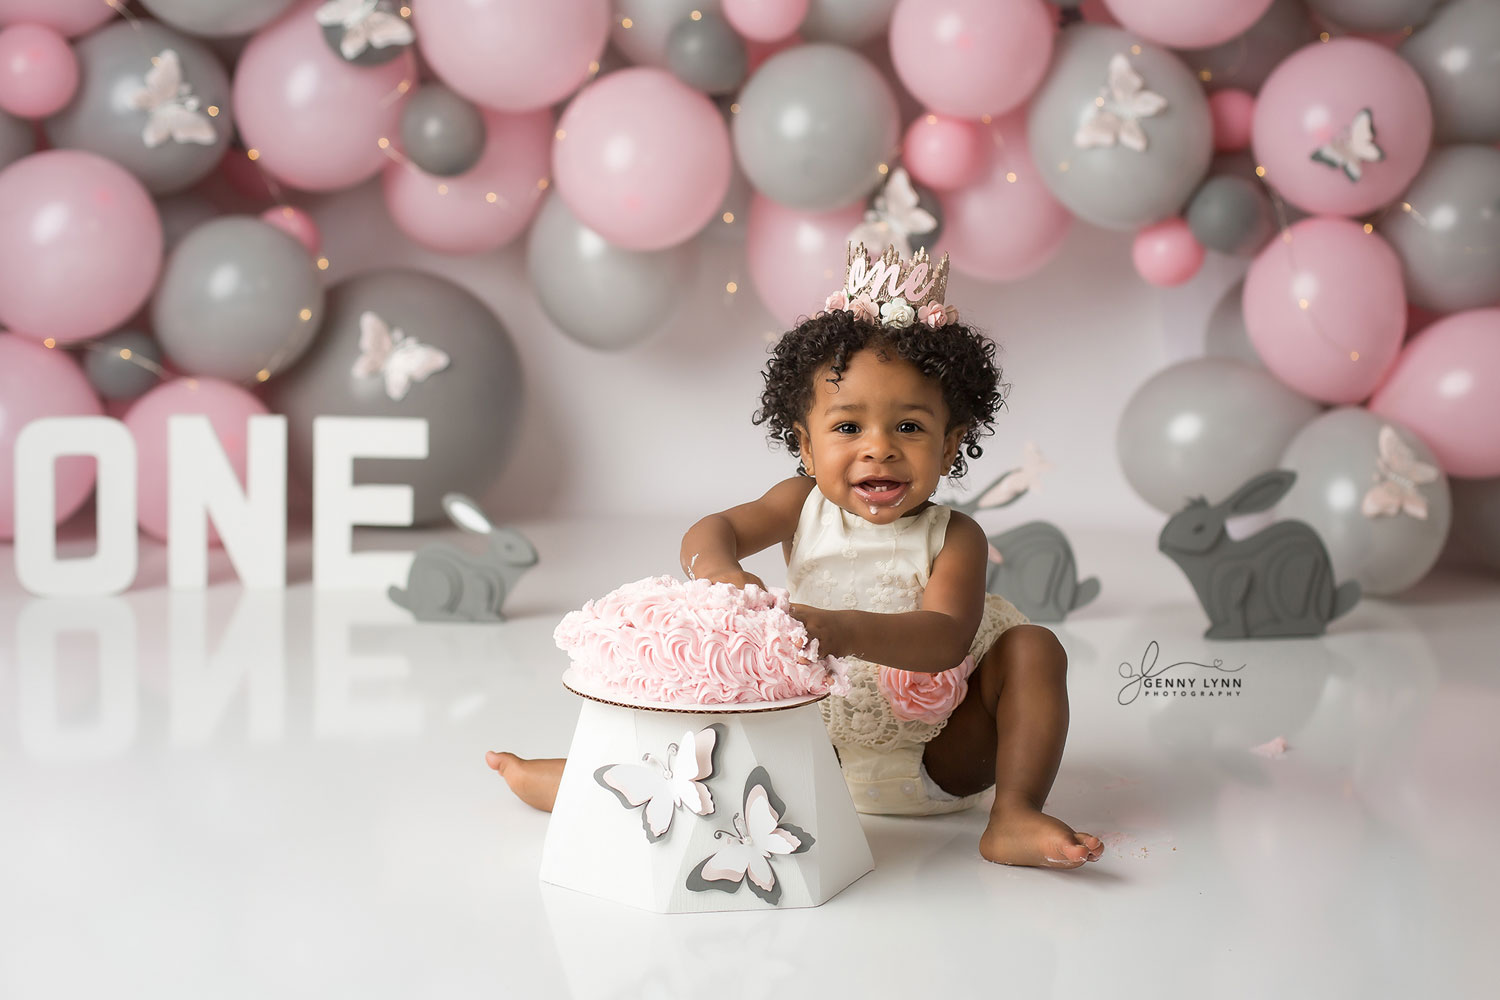 baby girl smiling with her first birthday cake smash in hollywood, fl